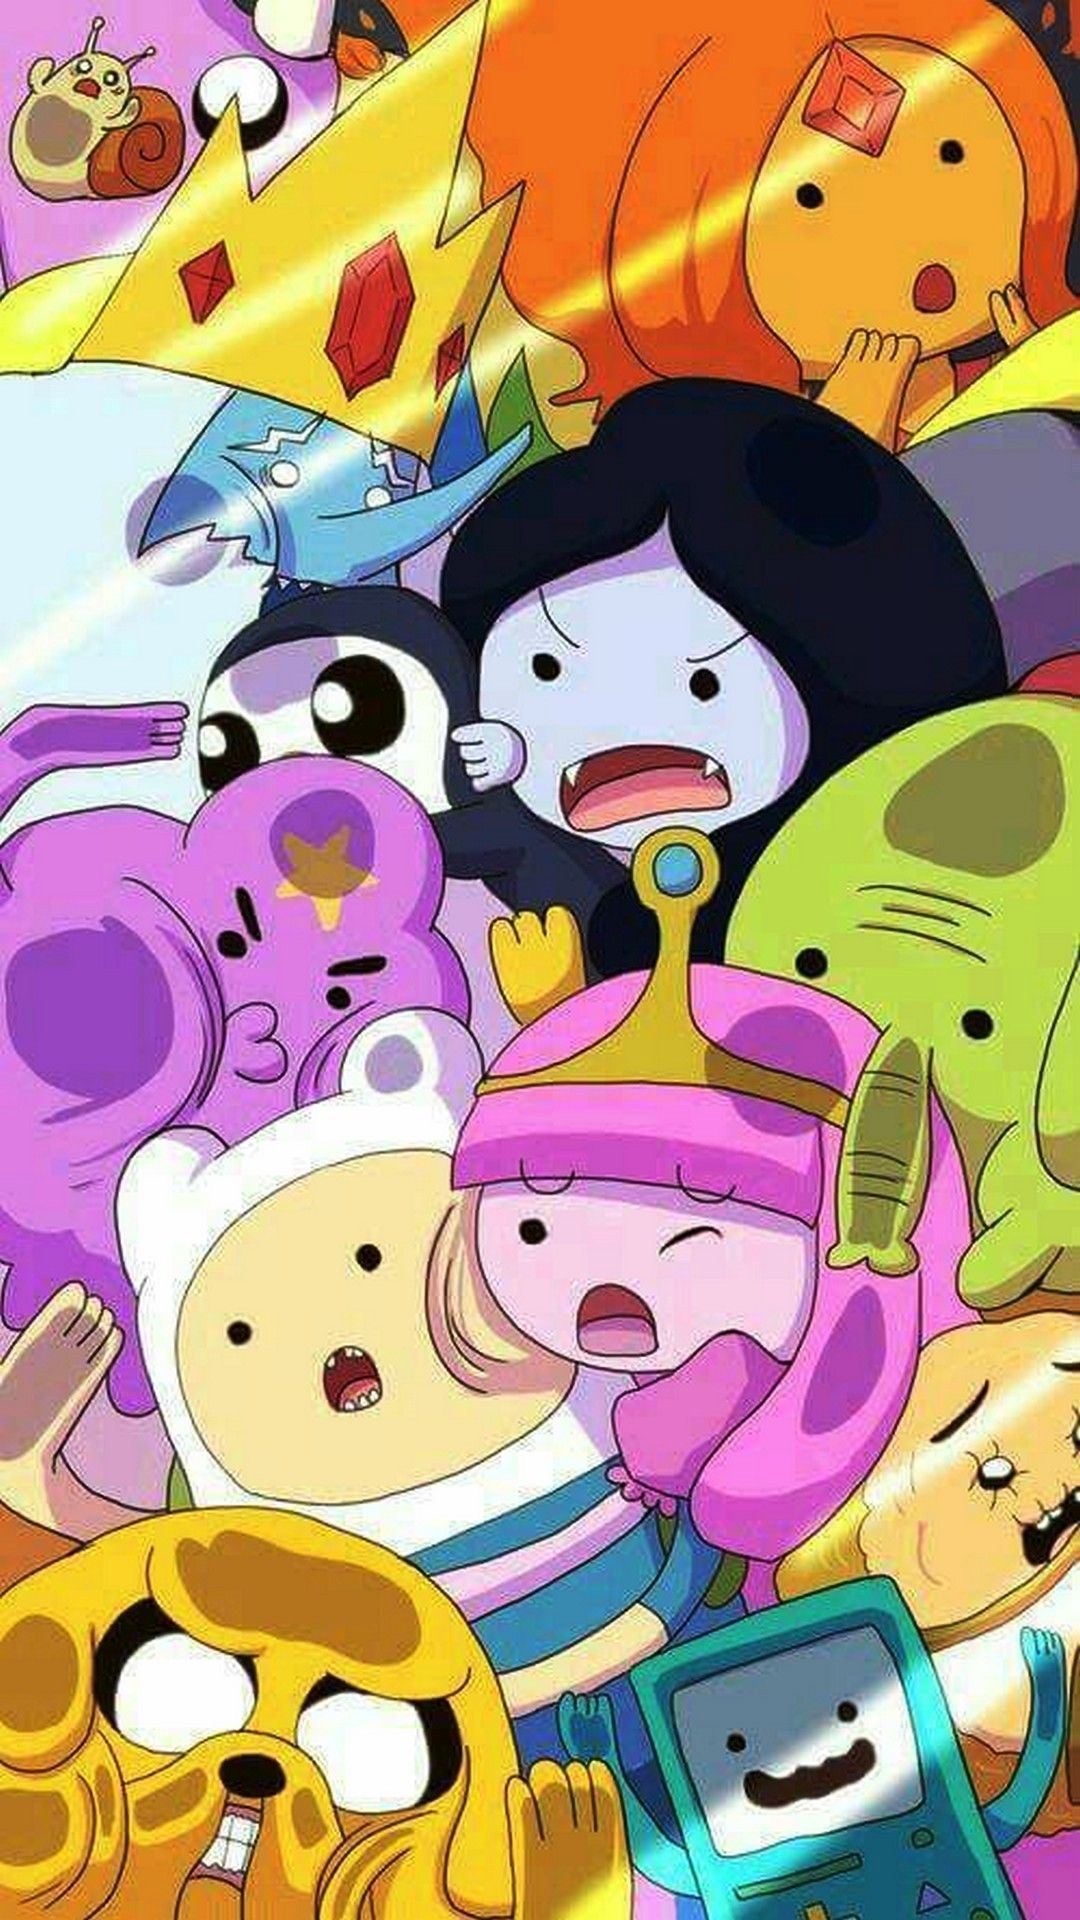 Adventure Time Wallpaper For Iphone Best Iphone Wallpaper Adventure Time Cartoon Adventure Time Wallpaper Cartoon Wallpaper